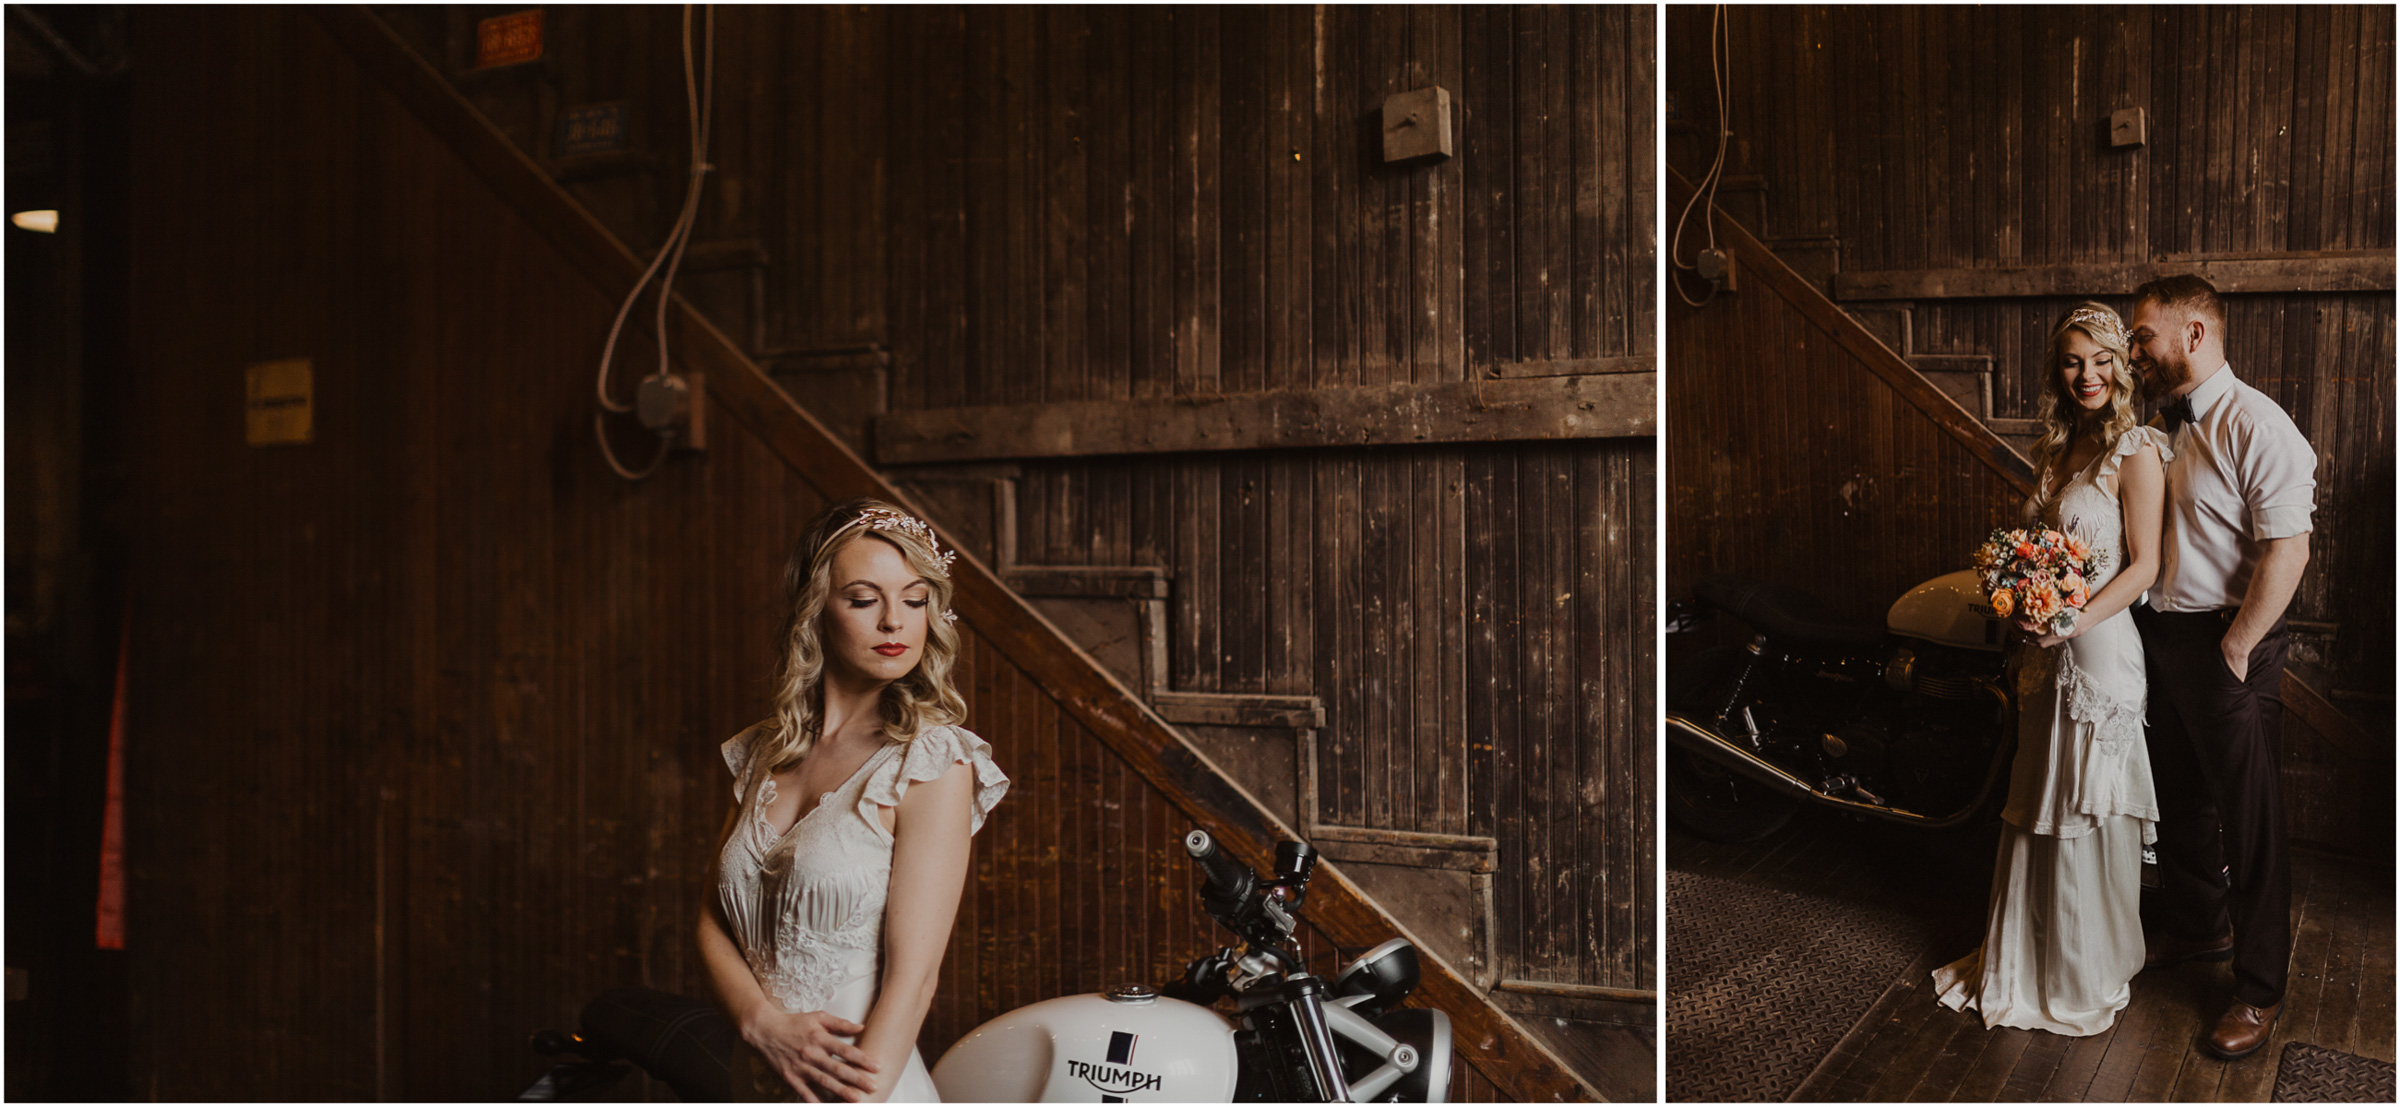 alyssa barletter photography styled shoot wedding inspiration kansas city west bottoms photographer motorcycle edgy intimate-18.jpg